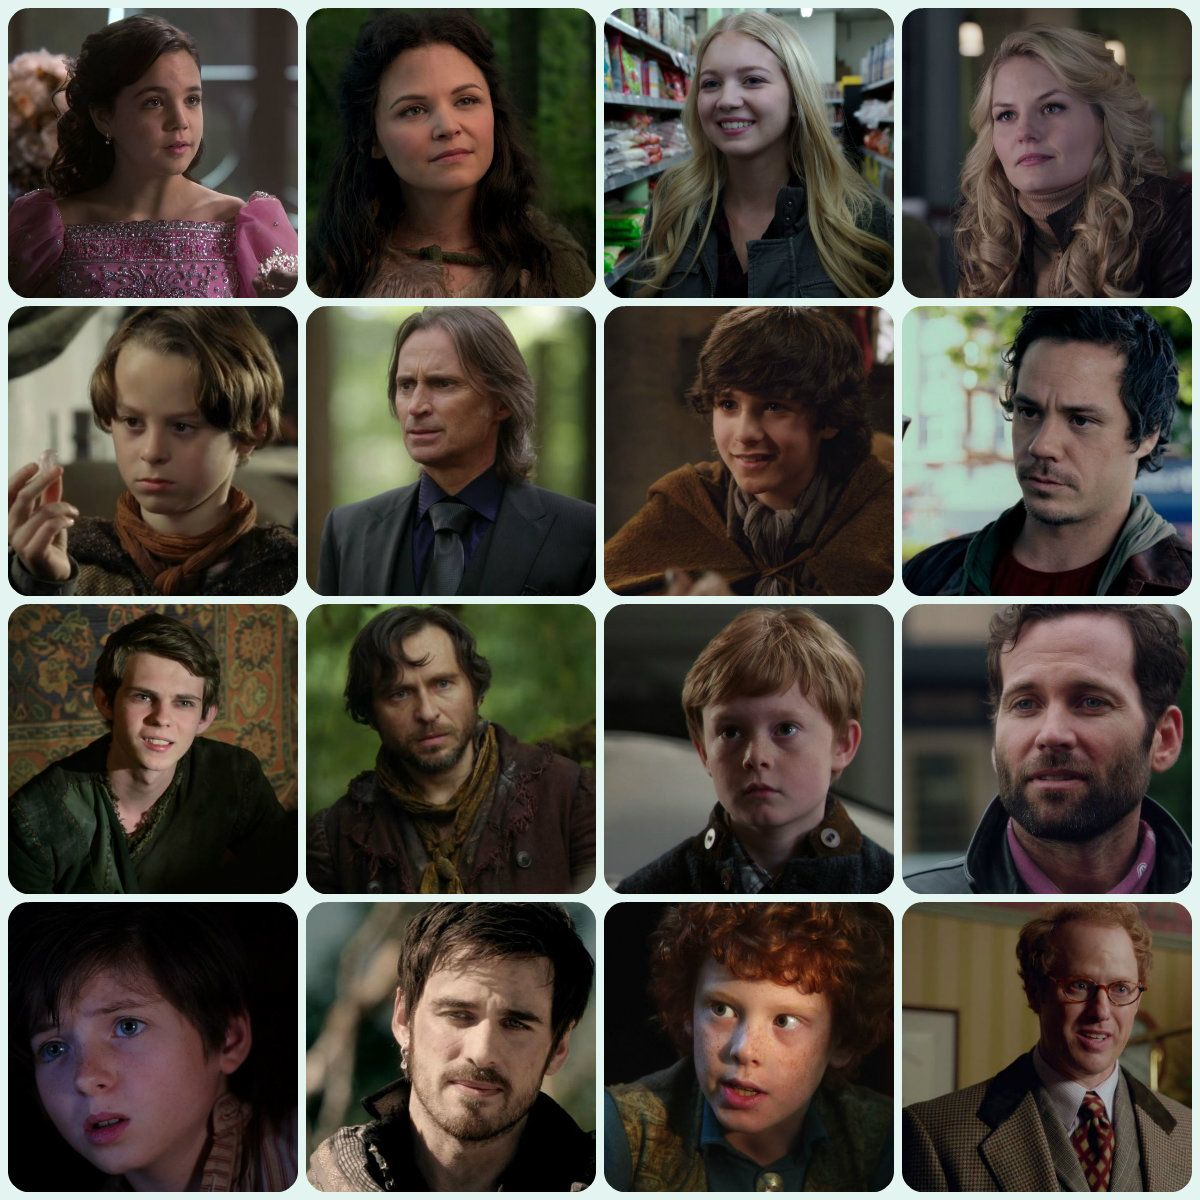 OUAT - Great Cast of younger versions of the characters